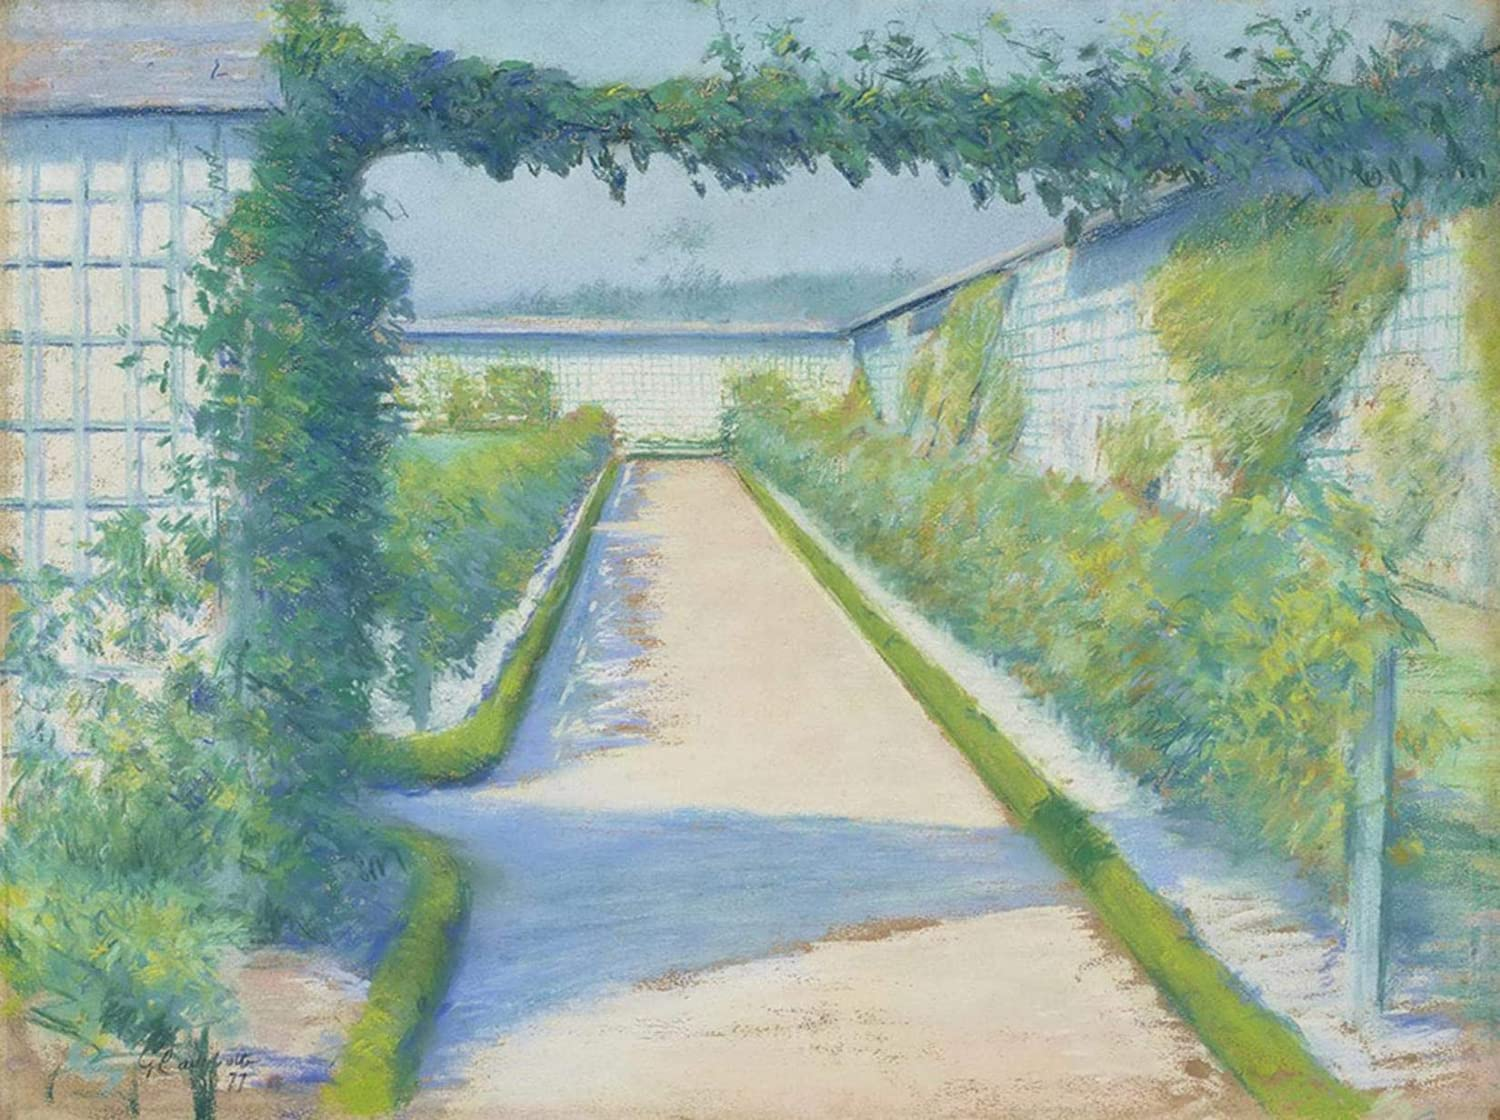 Oil Paint by Number Kits Digital Painting by Numbers for Adults Paint by Number for Kids 16X20 Inch Gustave Caillebotte Garden Vegetable Garden Yerres